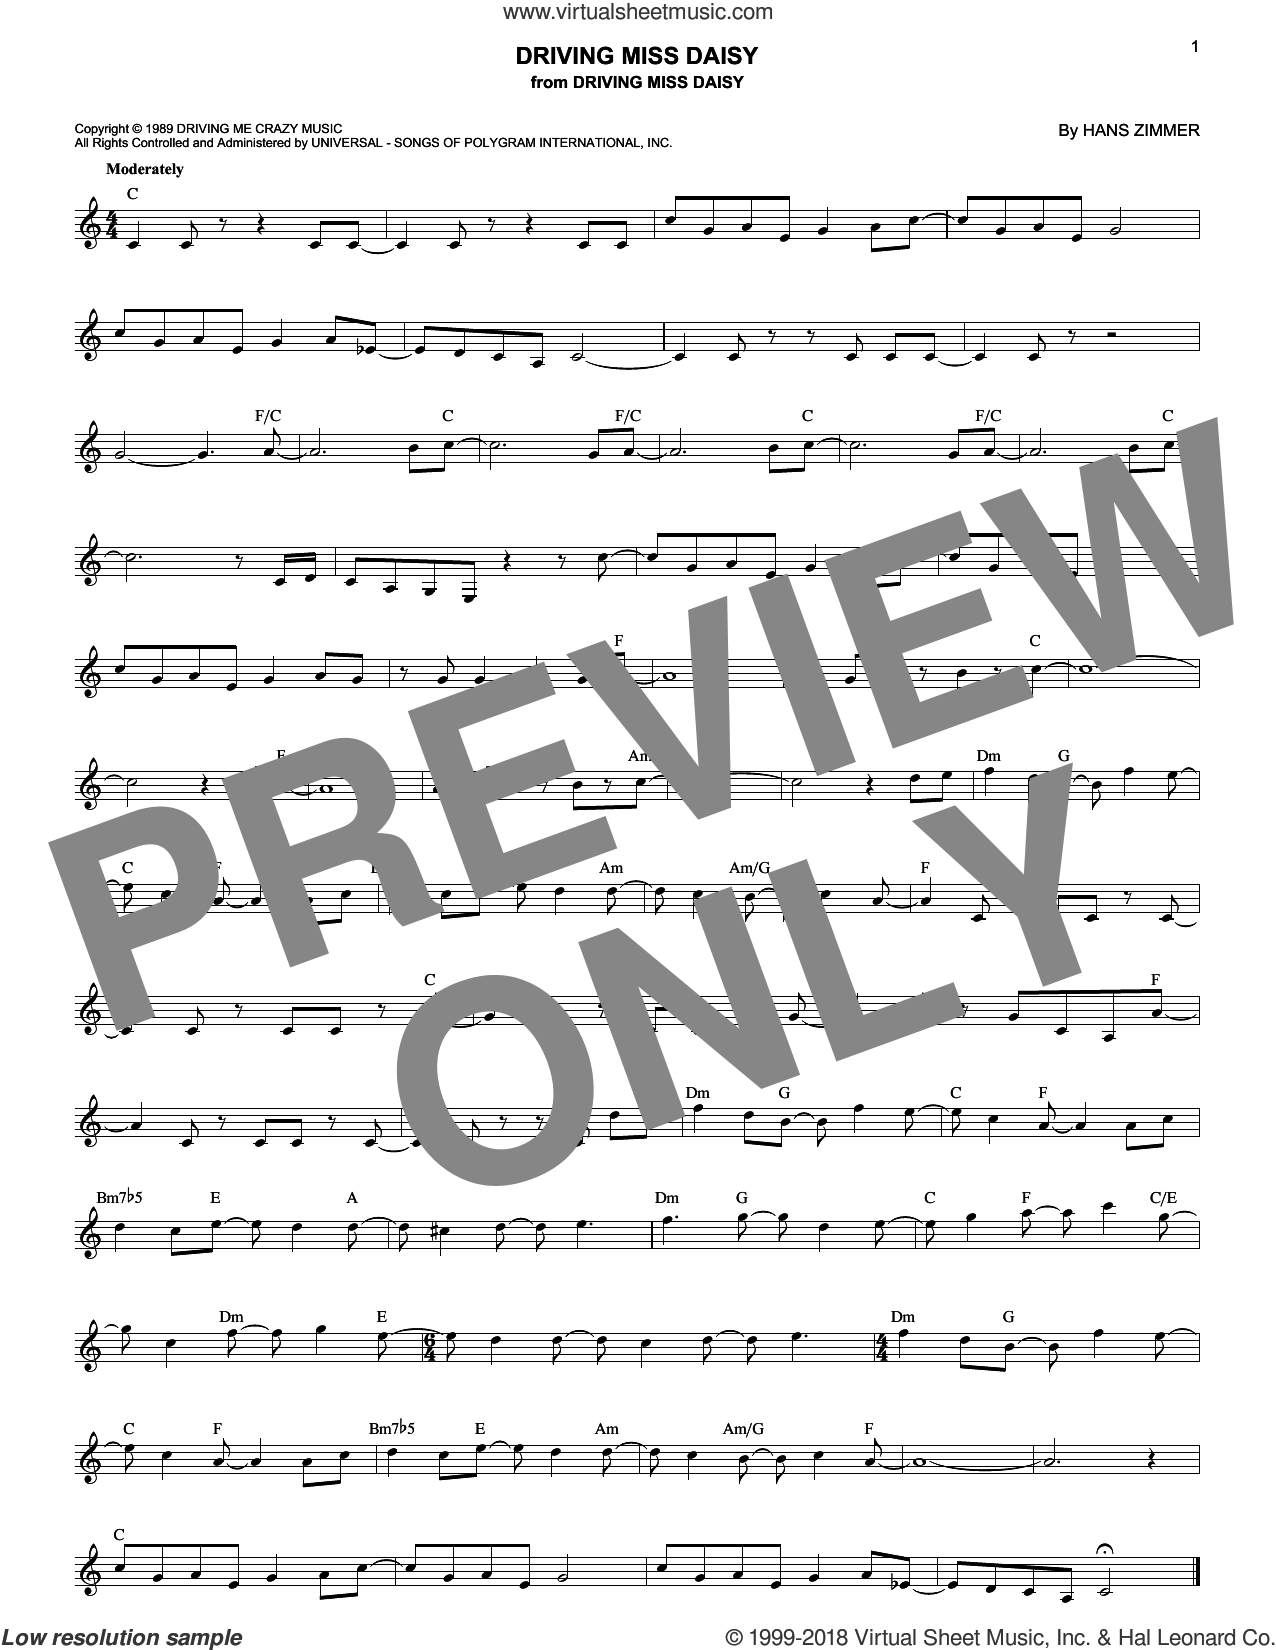 Driving Miss Daisy sheet music for voice and other instruments (fake book) by Hans Zimmer. Score Image Preview.